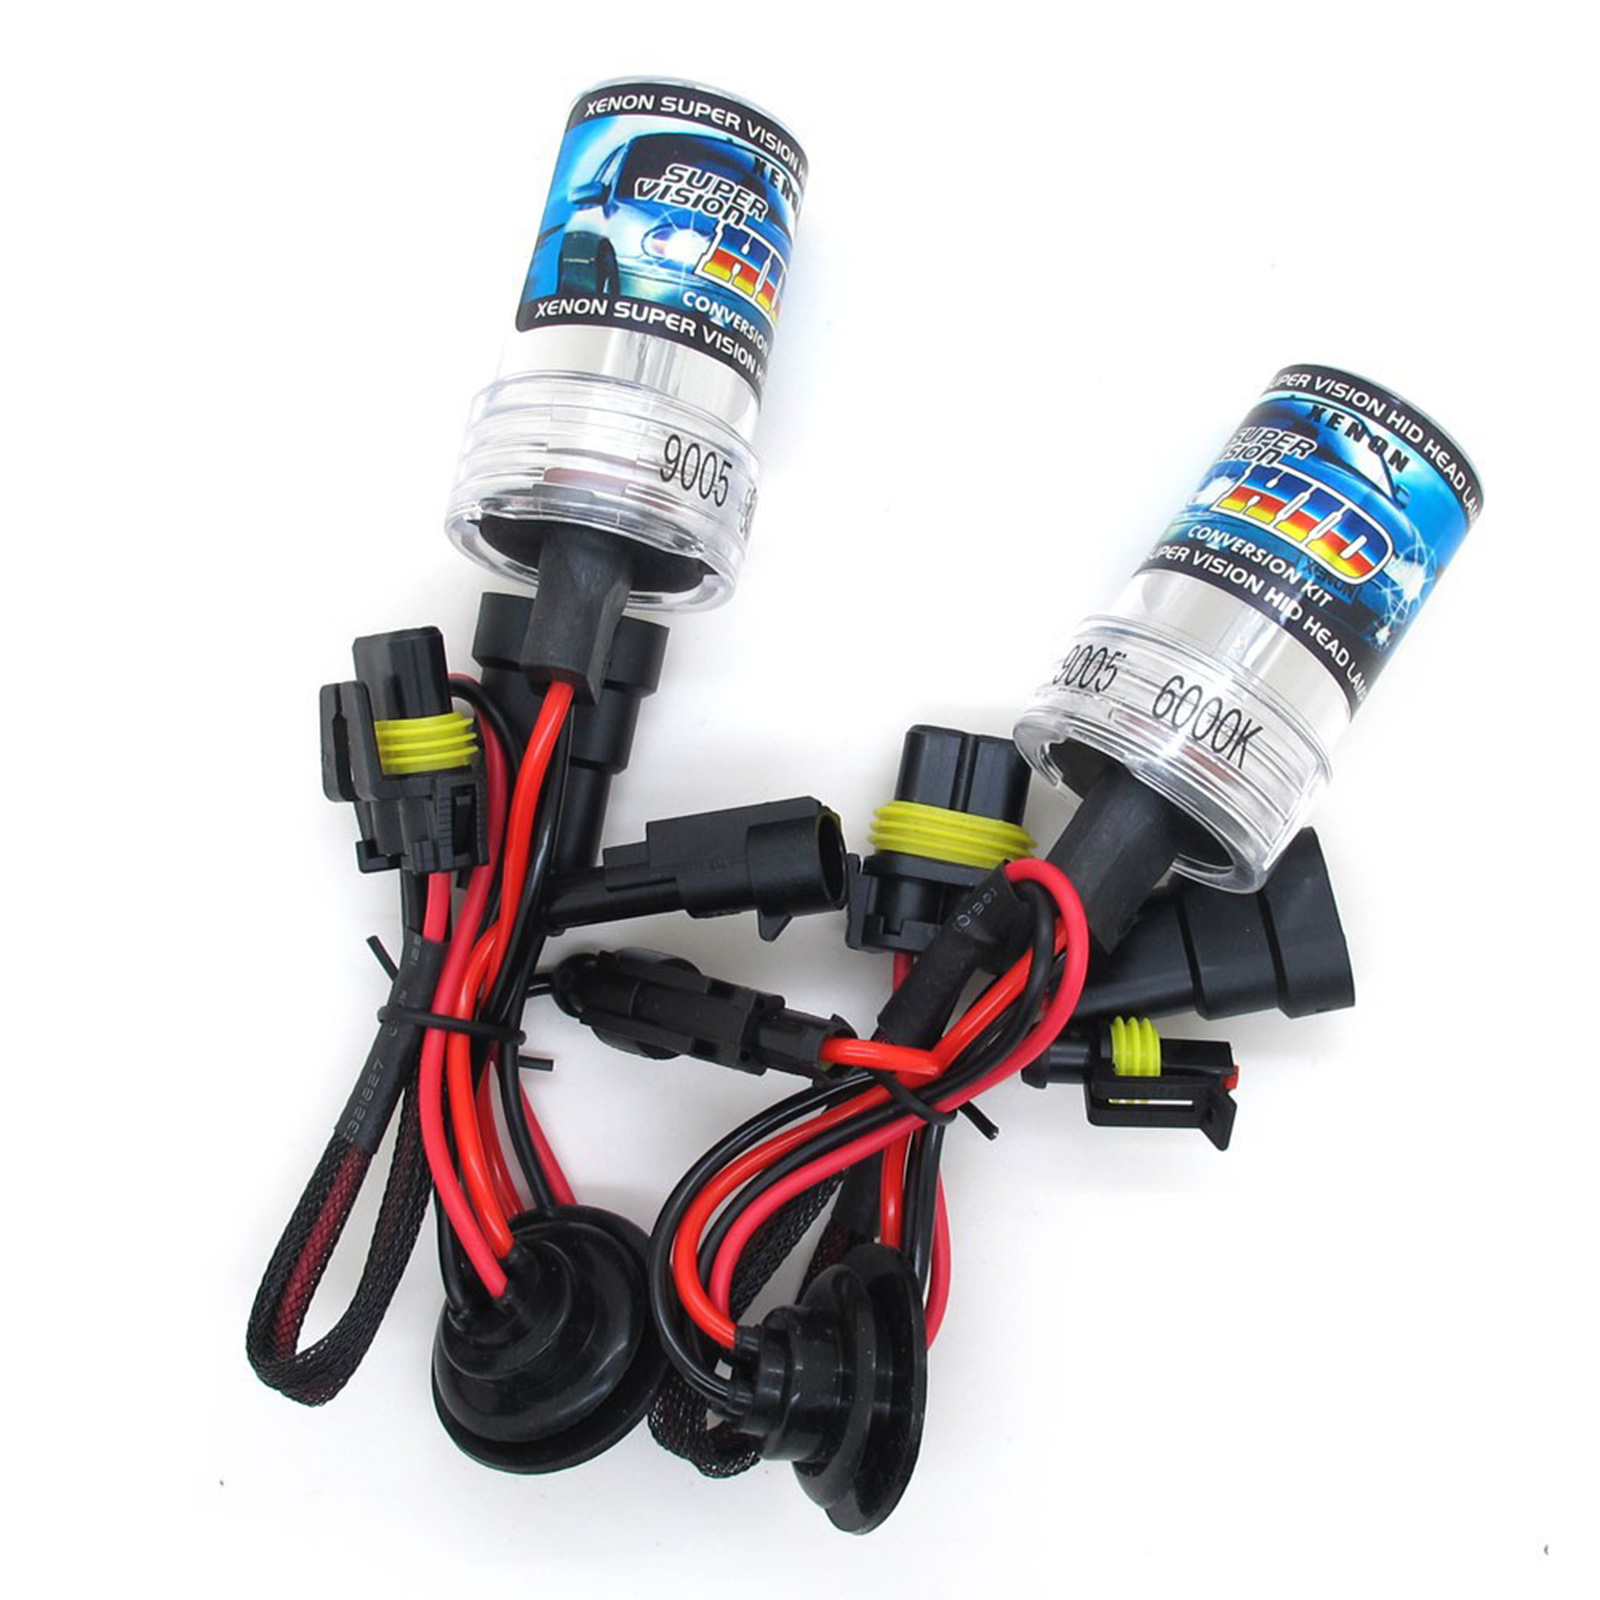 2X BULBS FOR AFTER MARKET HID CONVERSION KIT XENON 8000K BLUE 35W PLUG IN